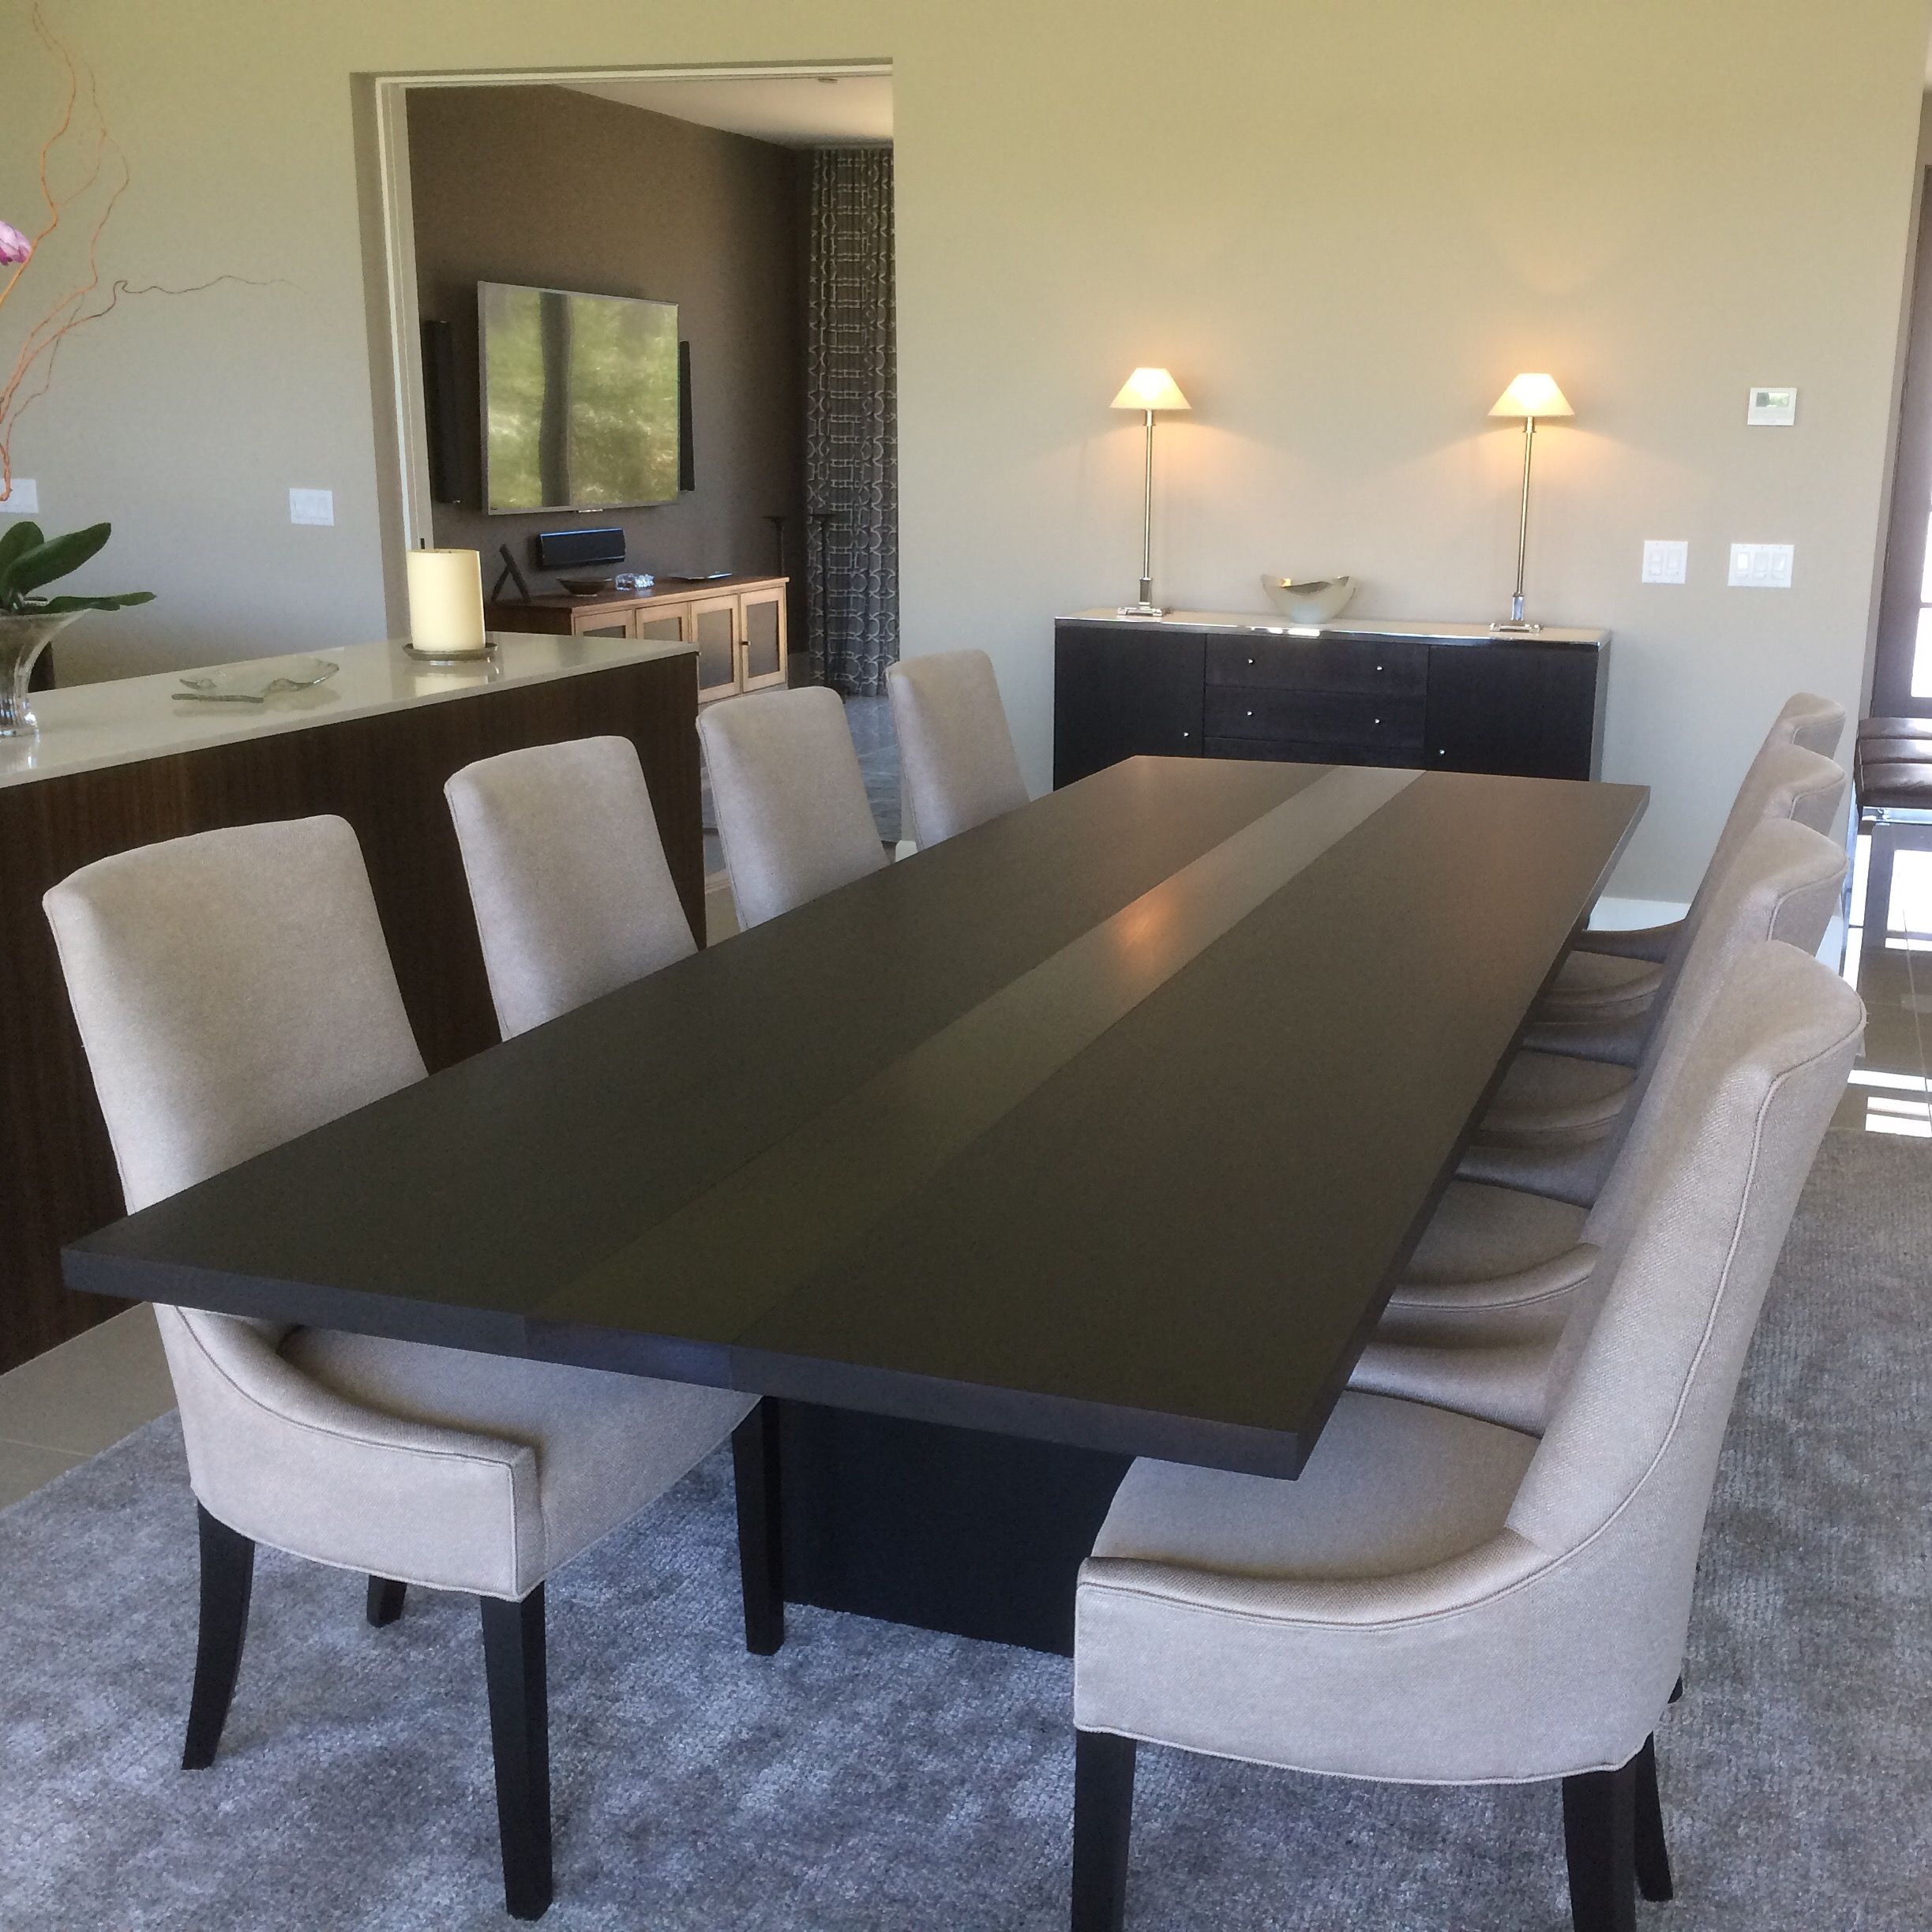 Handmade modern dining table by bedre woodworking - Modern design dining table ...